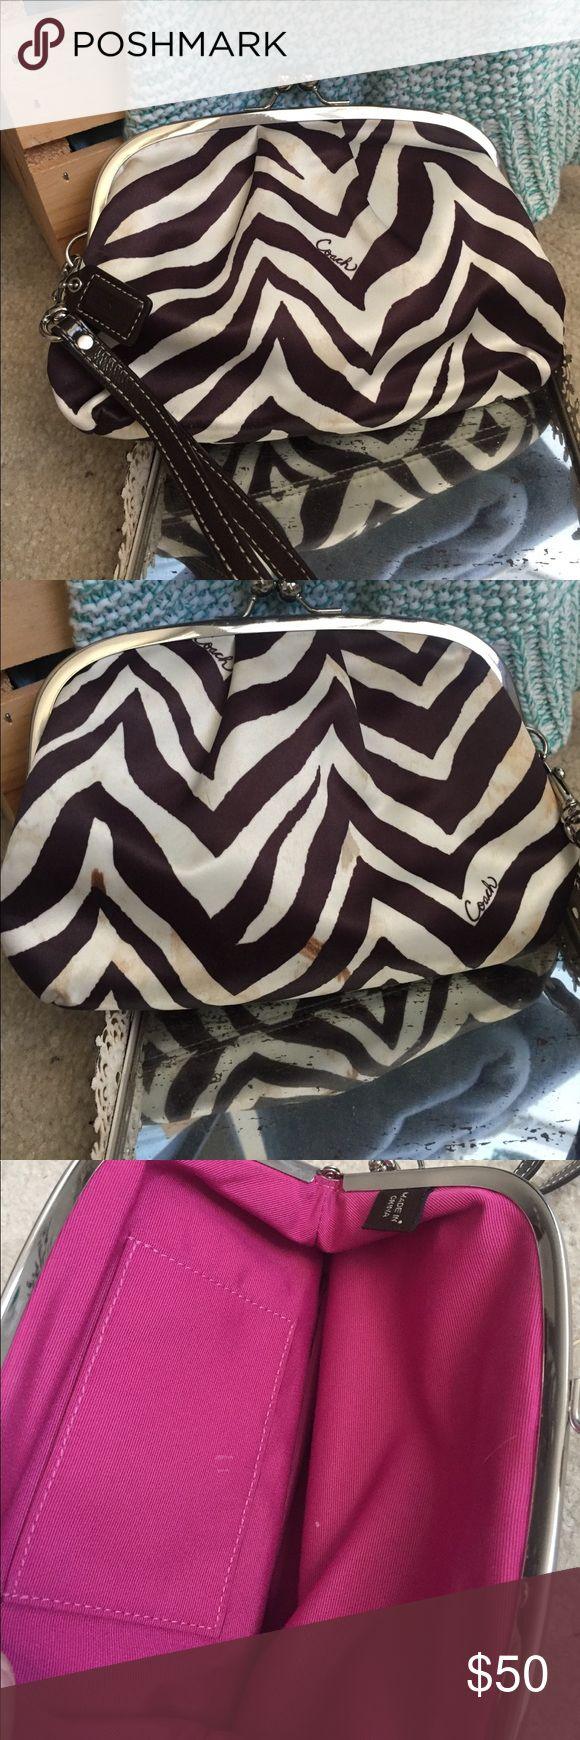 🎀Coach Clutch🎀 Used condition.  Super rare Coach Clutch with zebra print satin.  This Clutch has been well loved with satin stains (please see pictures for details) price reflects used condition.  Inside is pink fabric with side pocket, great condition.  Perfect clutch for going out ✨ Coach Bags Clutches & Wristlets